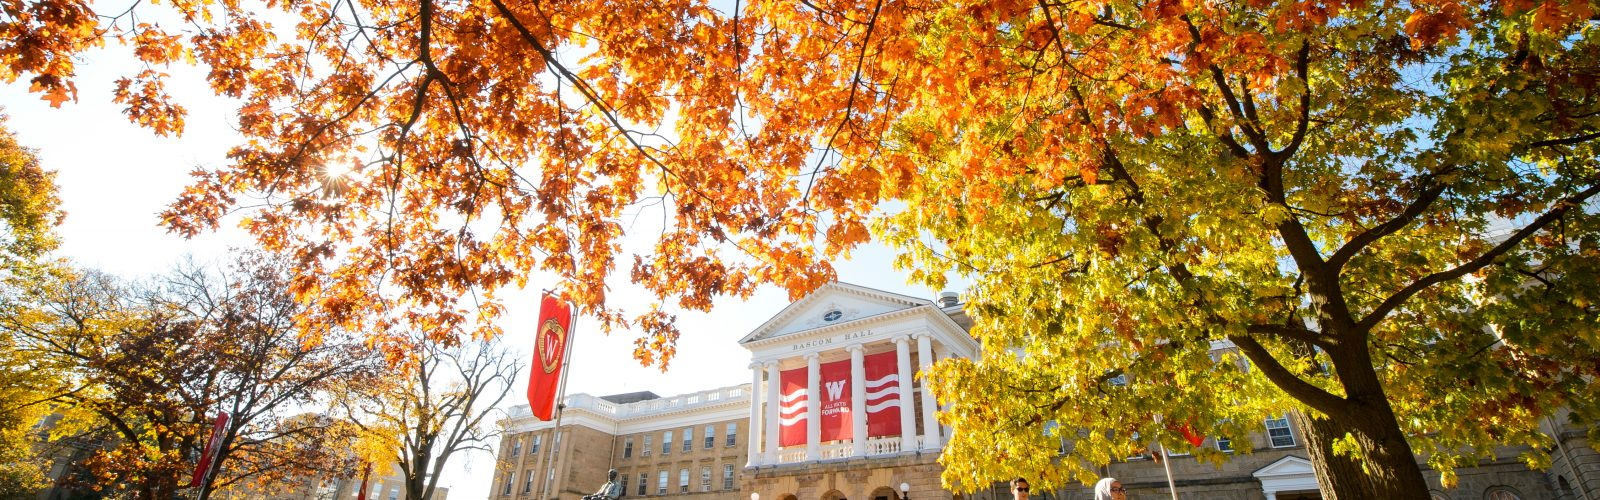 Looking up at Bascom Hall from the hill on a fall day.